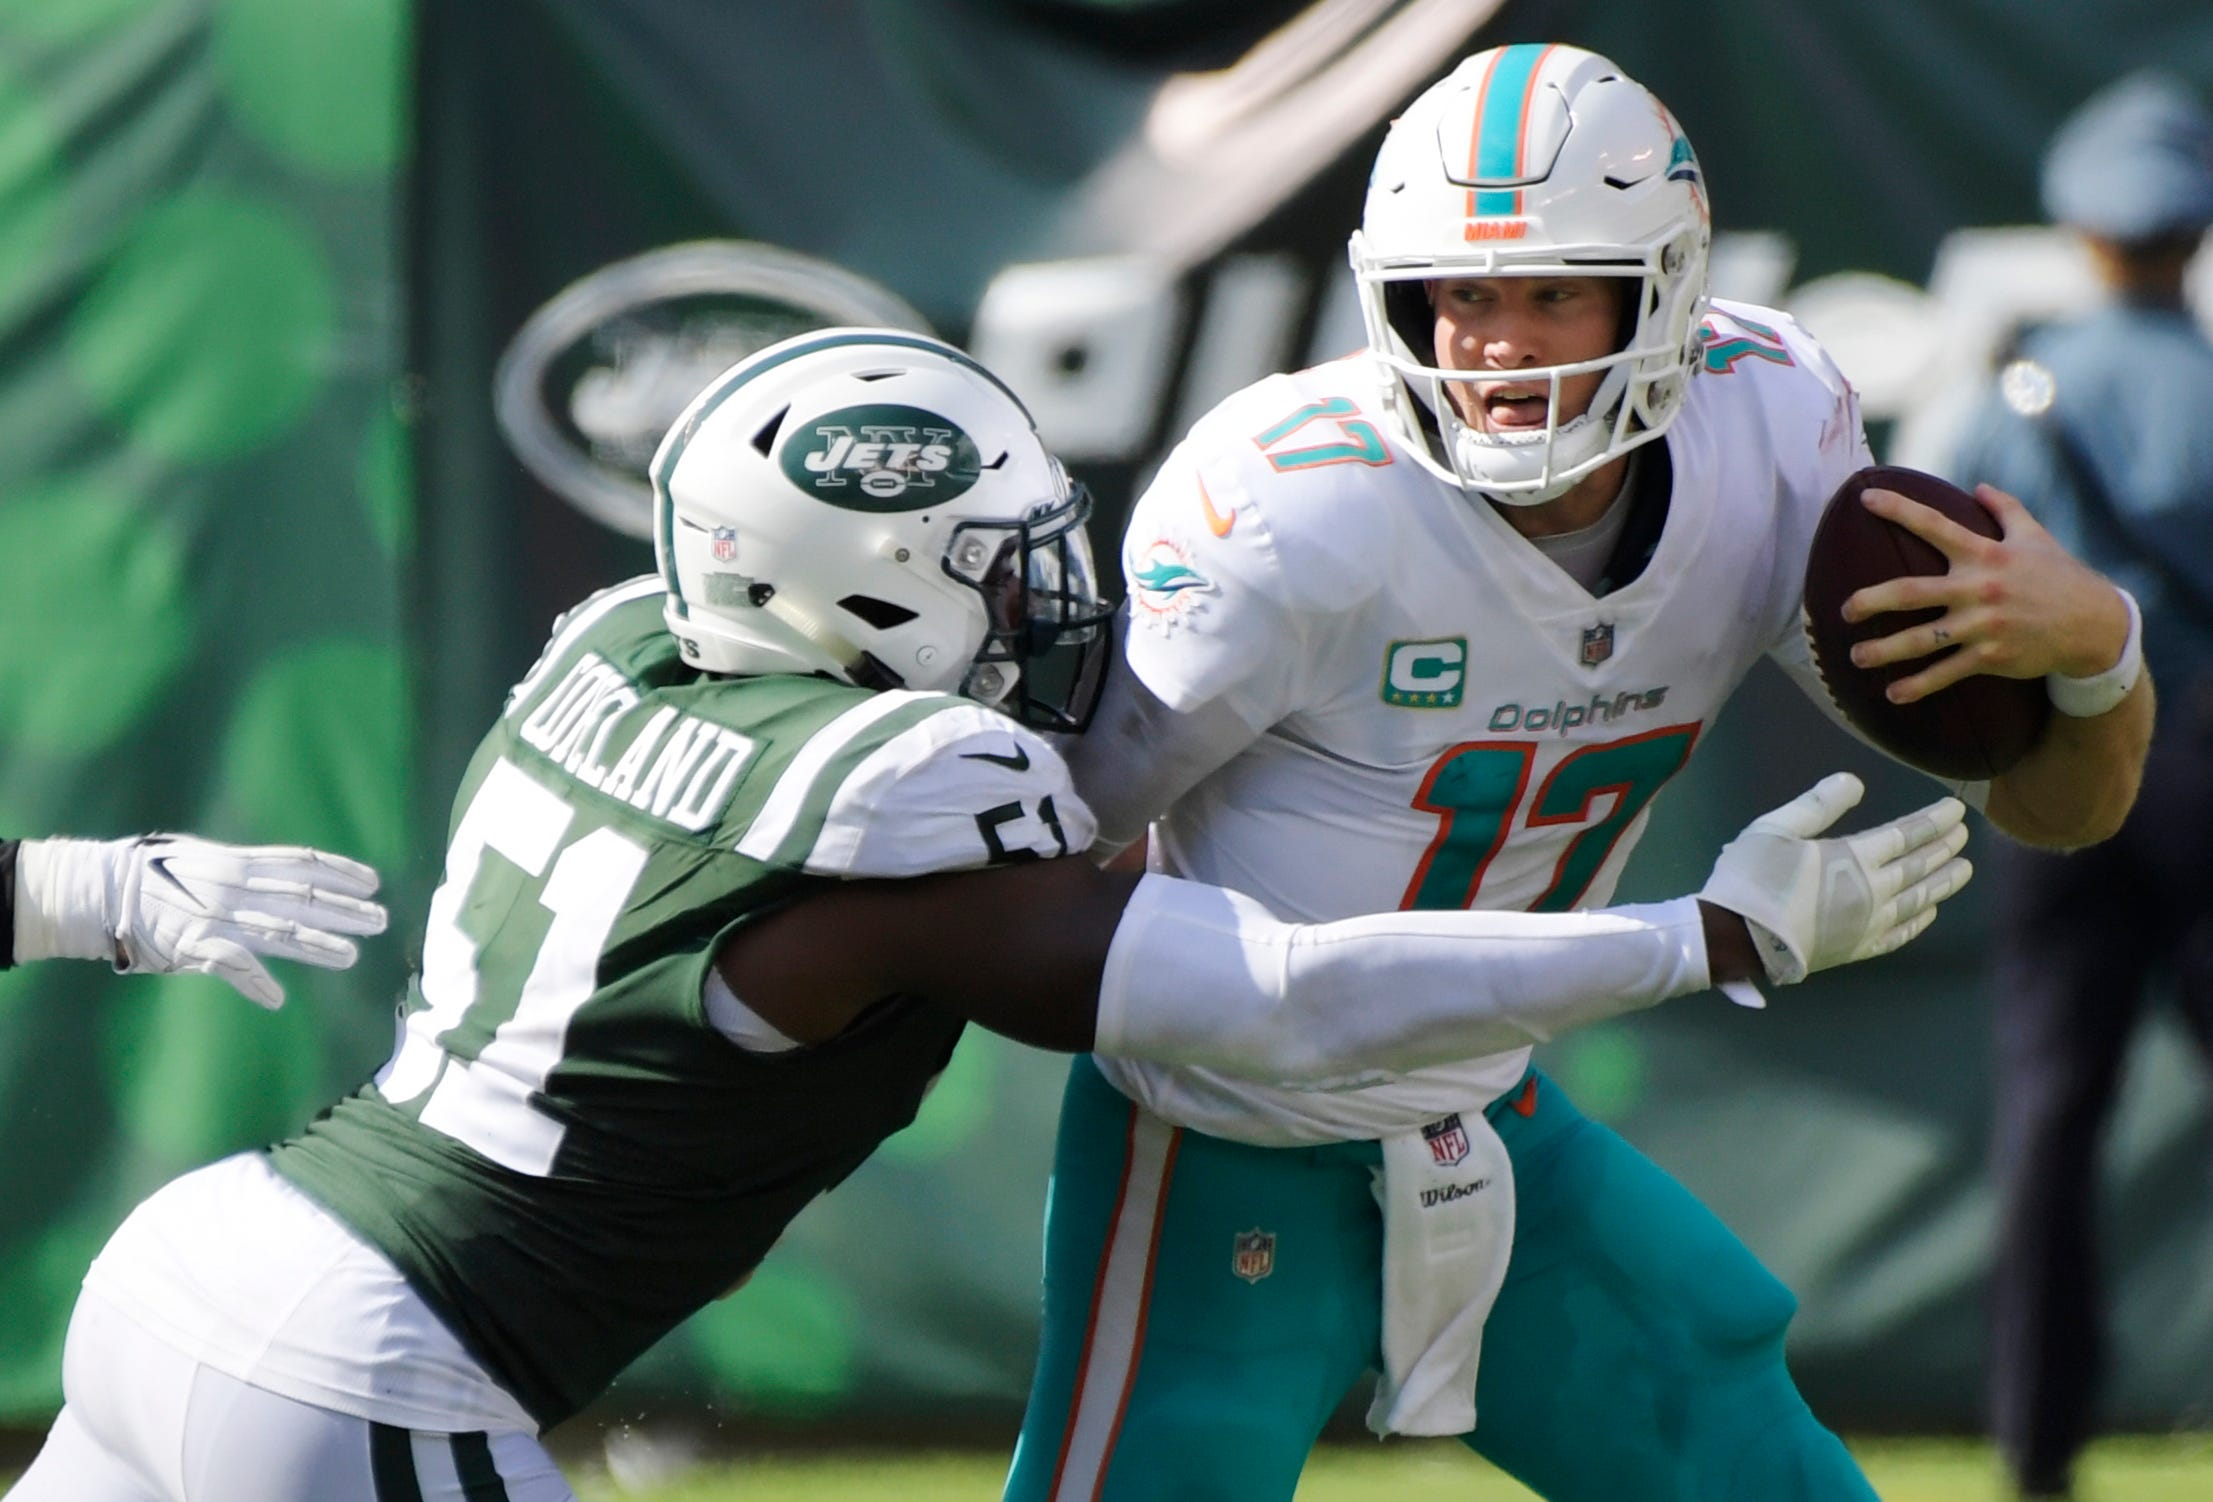 Dolphins are 2-0, and Gase isn't fazed whatsoever